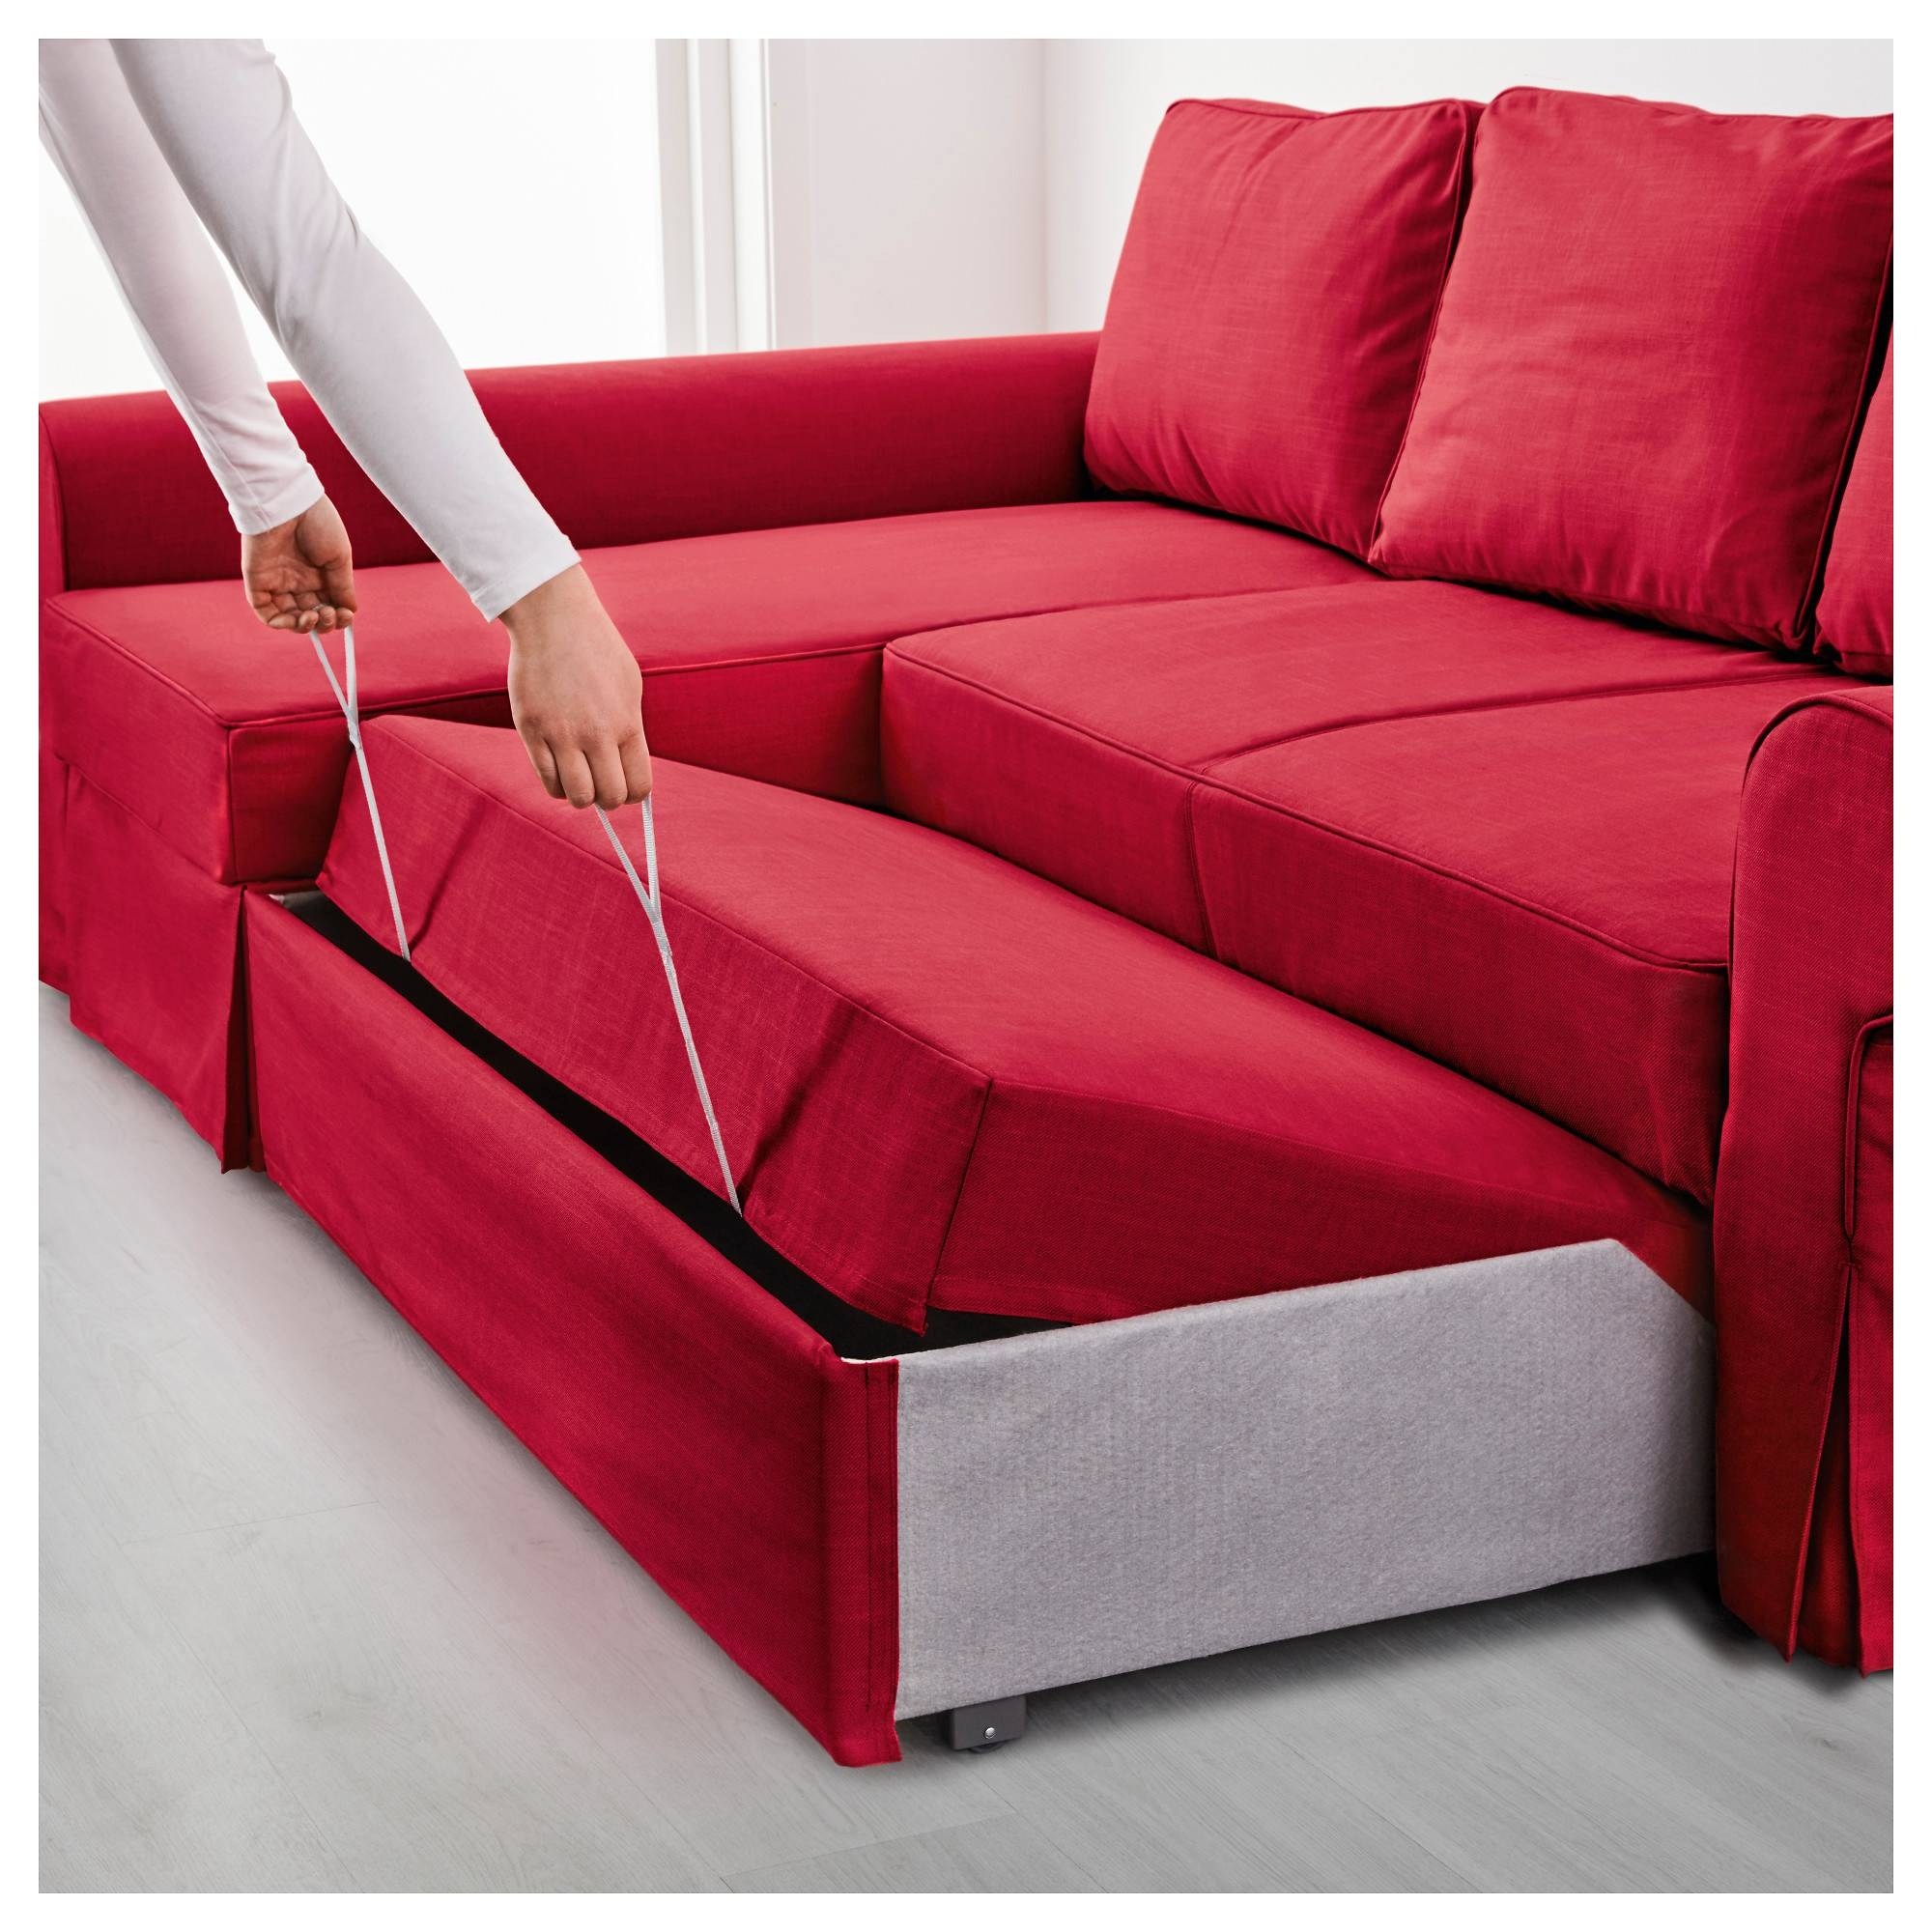 2019 Latest Red Sofa Beds Ikea